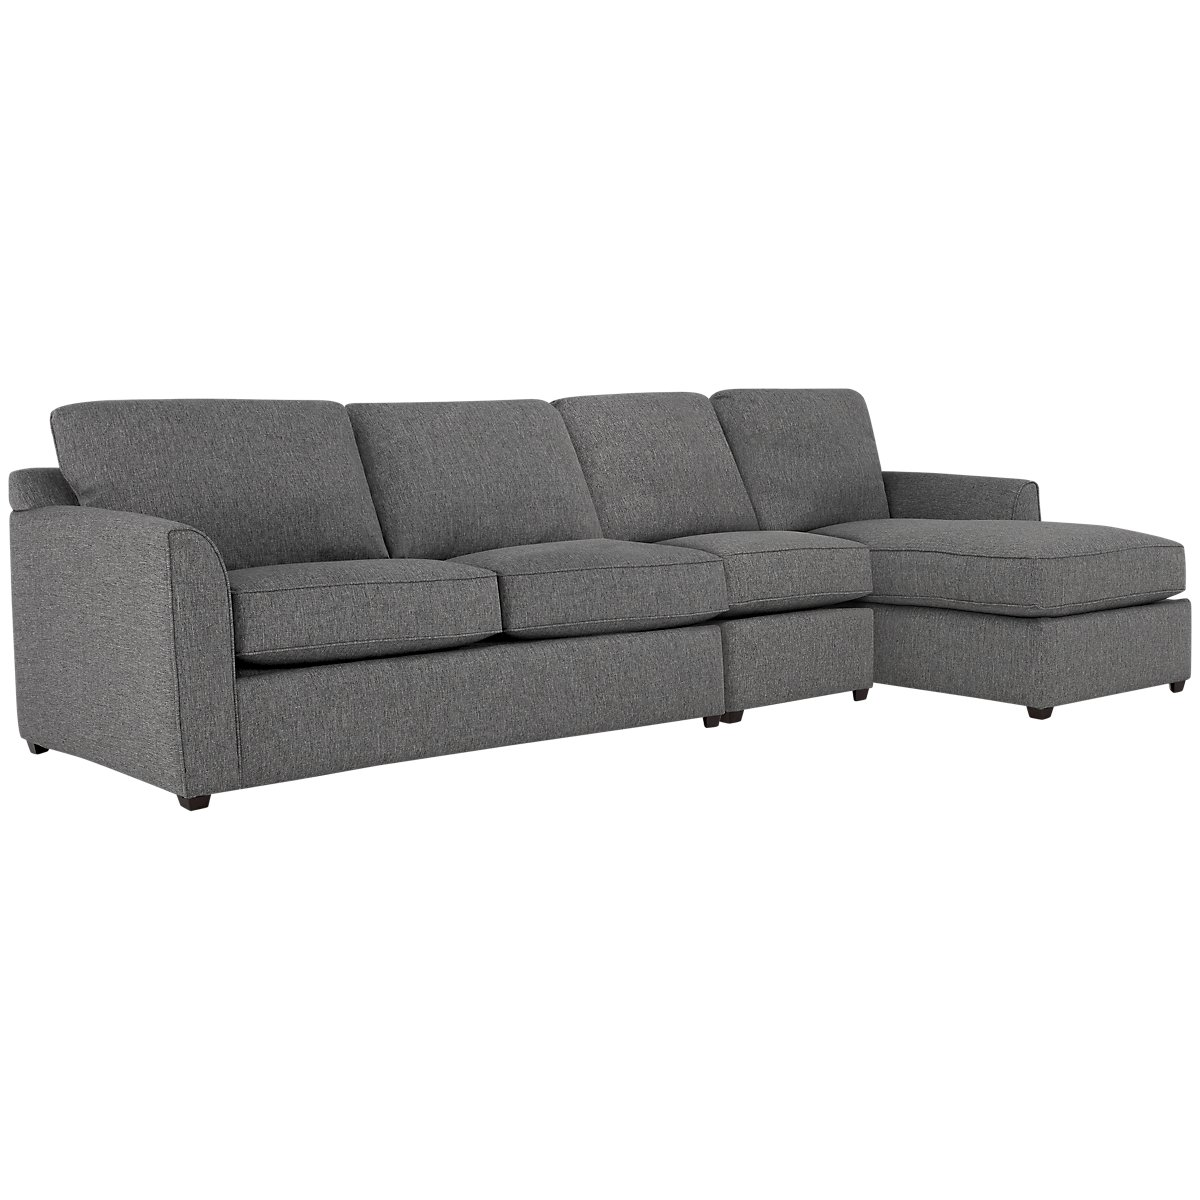 Asheville Gray Fabric Small Right Chaise Sectional